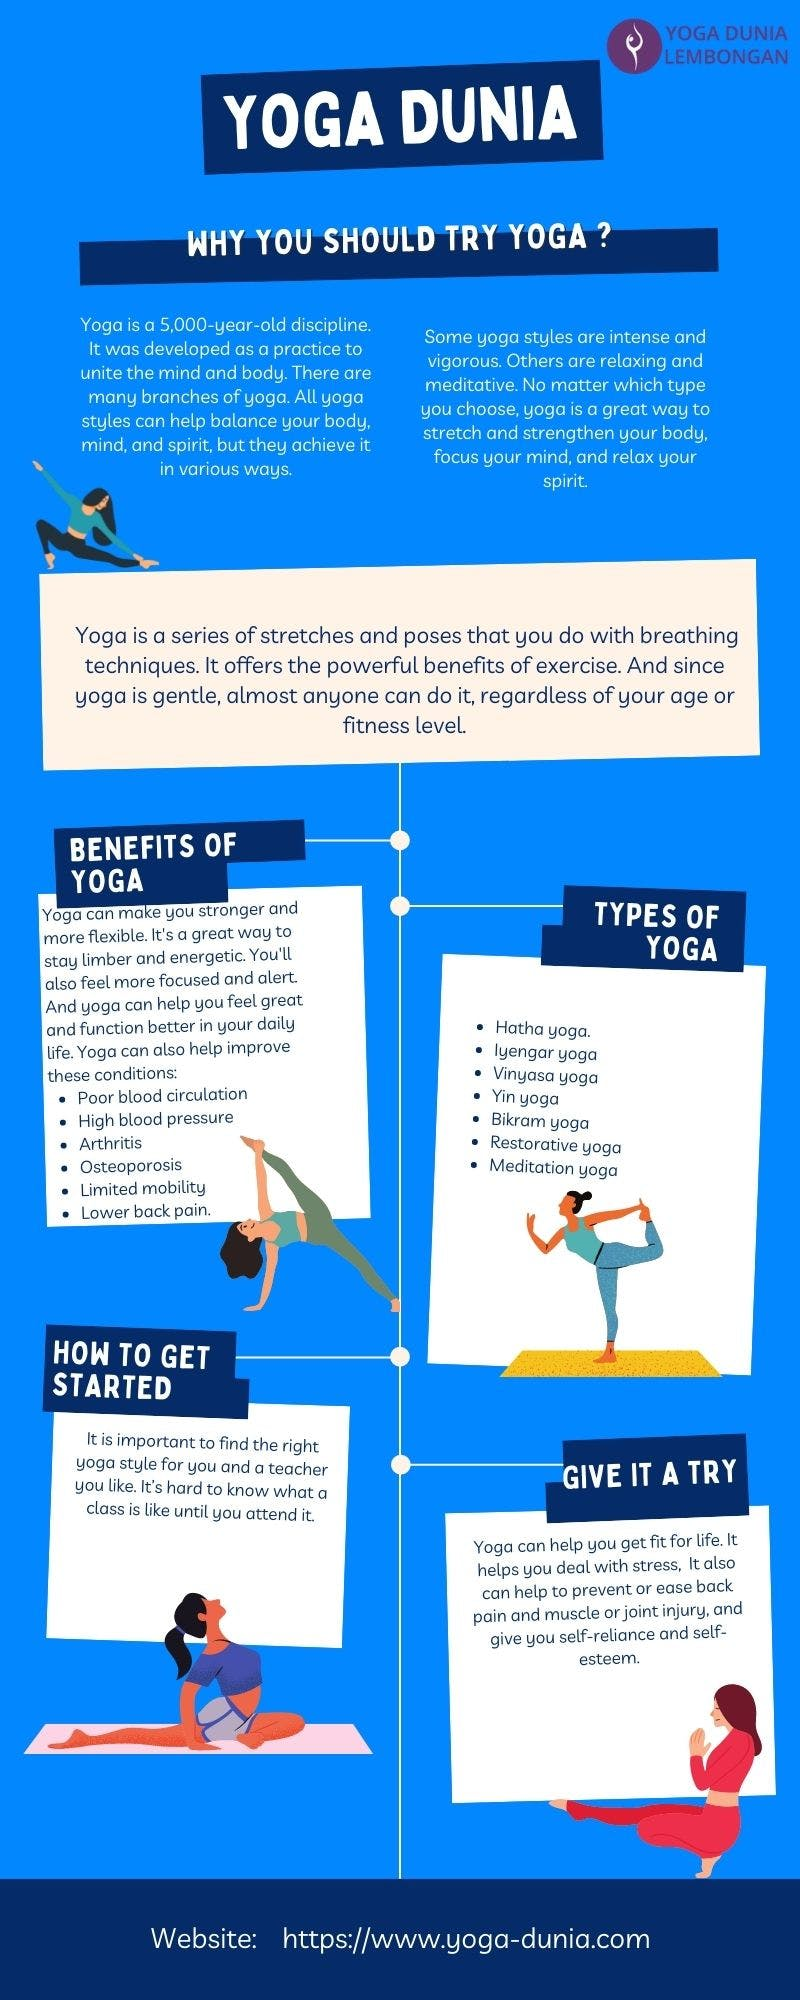 Why You Should Try Yoga.jpg